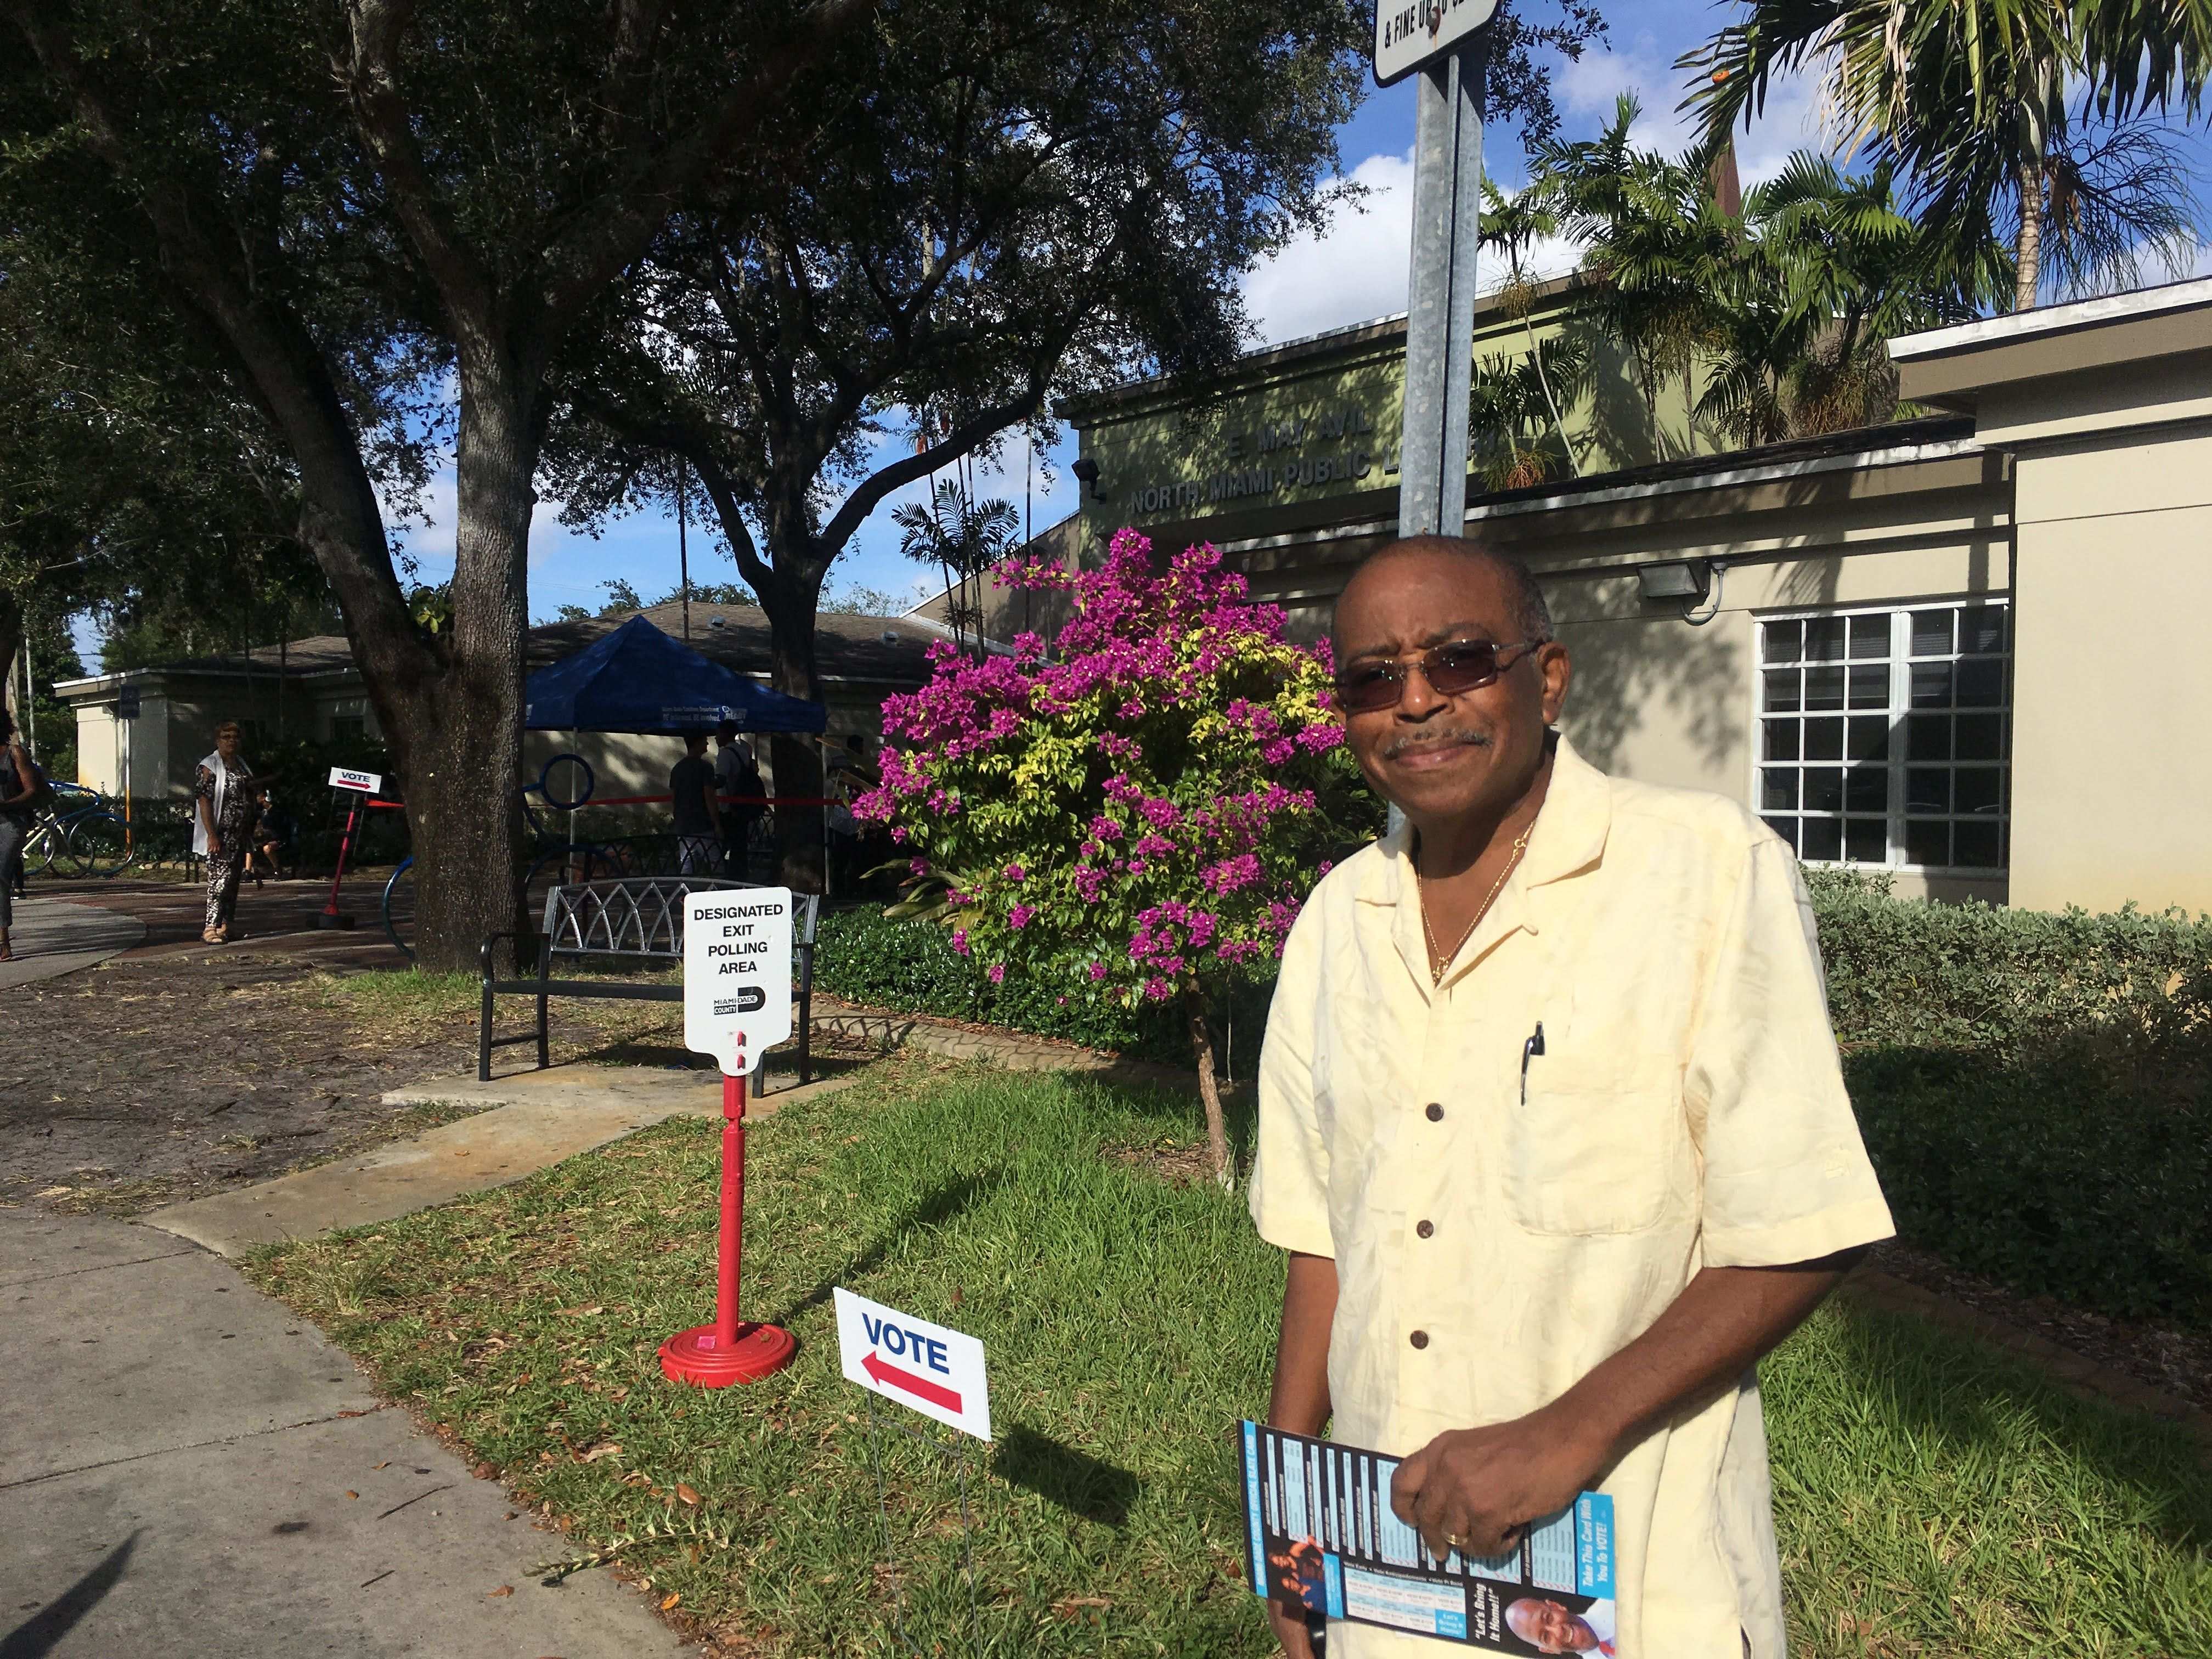 Camille Papin prepares to cast an early vote for Gillum at the North Miami Public Library. Papin who is 78 and a native of H